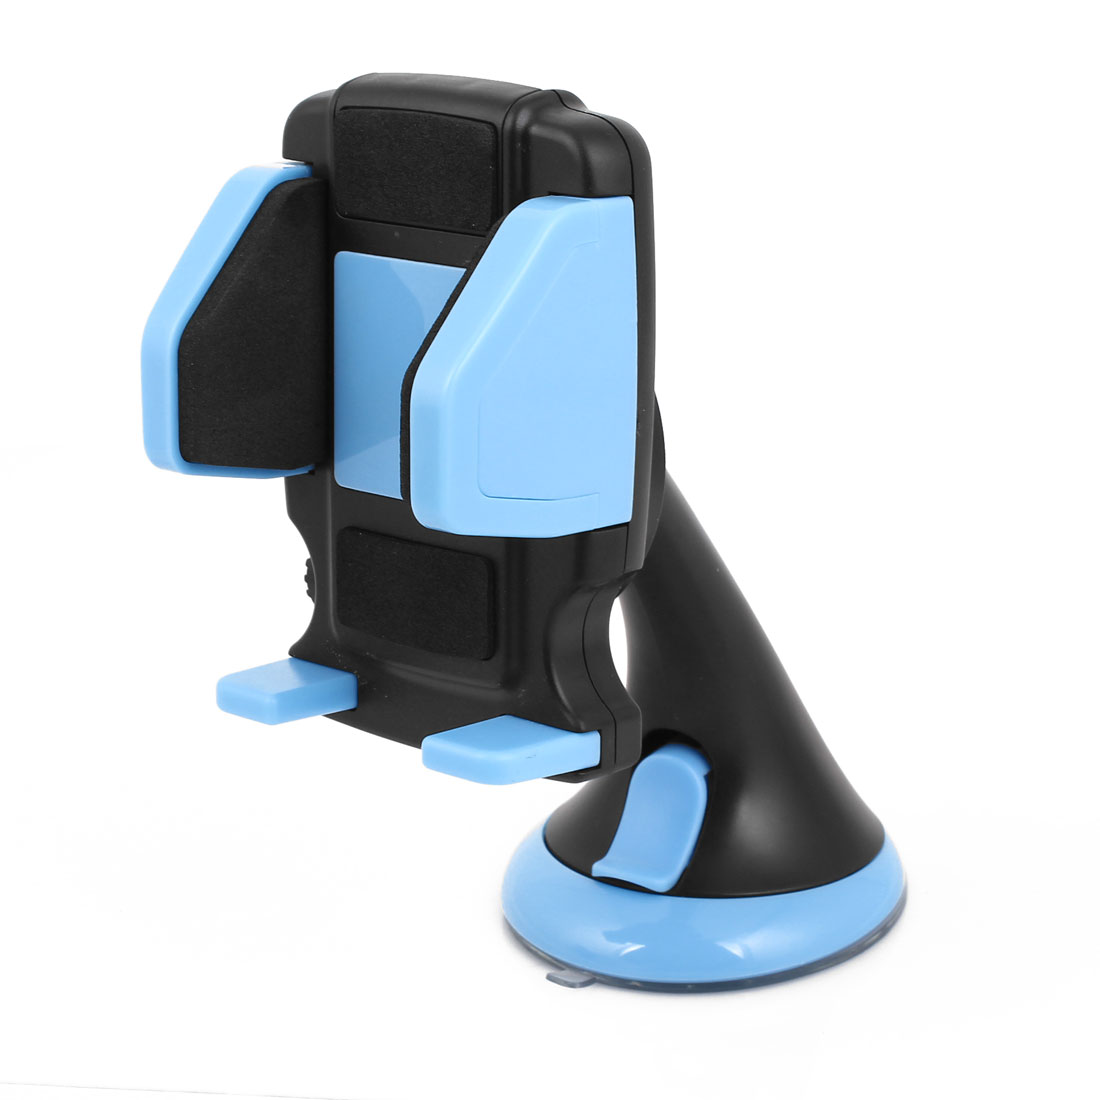 Windshield Dashboard Black Blue Suction Base Car Mount Cradle Holder for Phone GPS